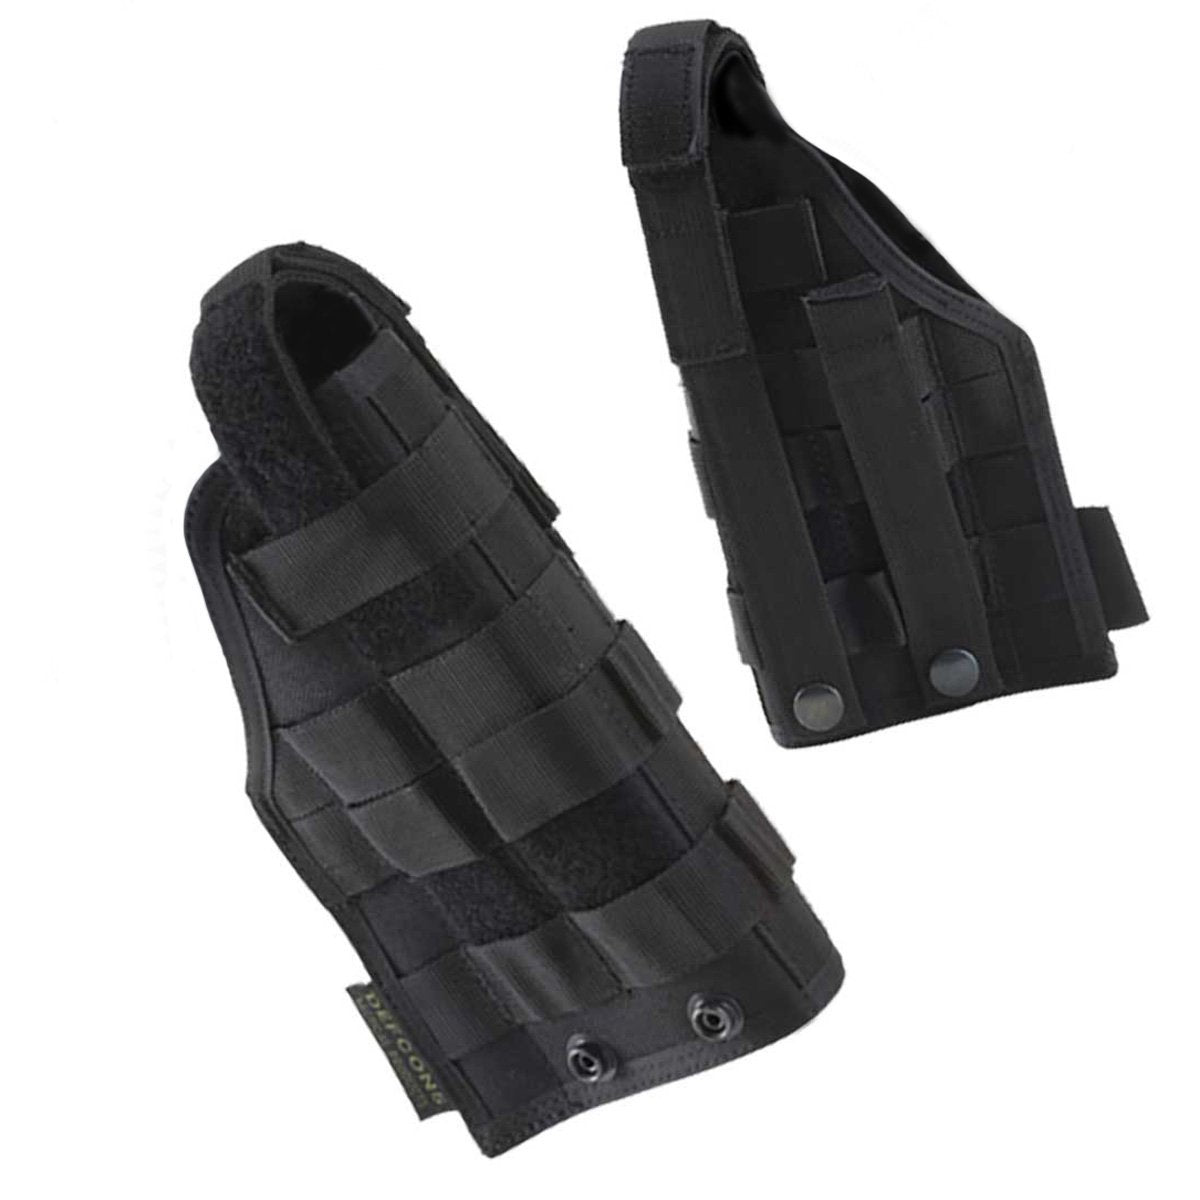 Defcon 5 Universal MOLLE Holster | UKMCPro